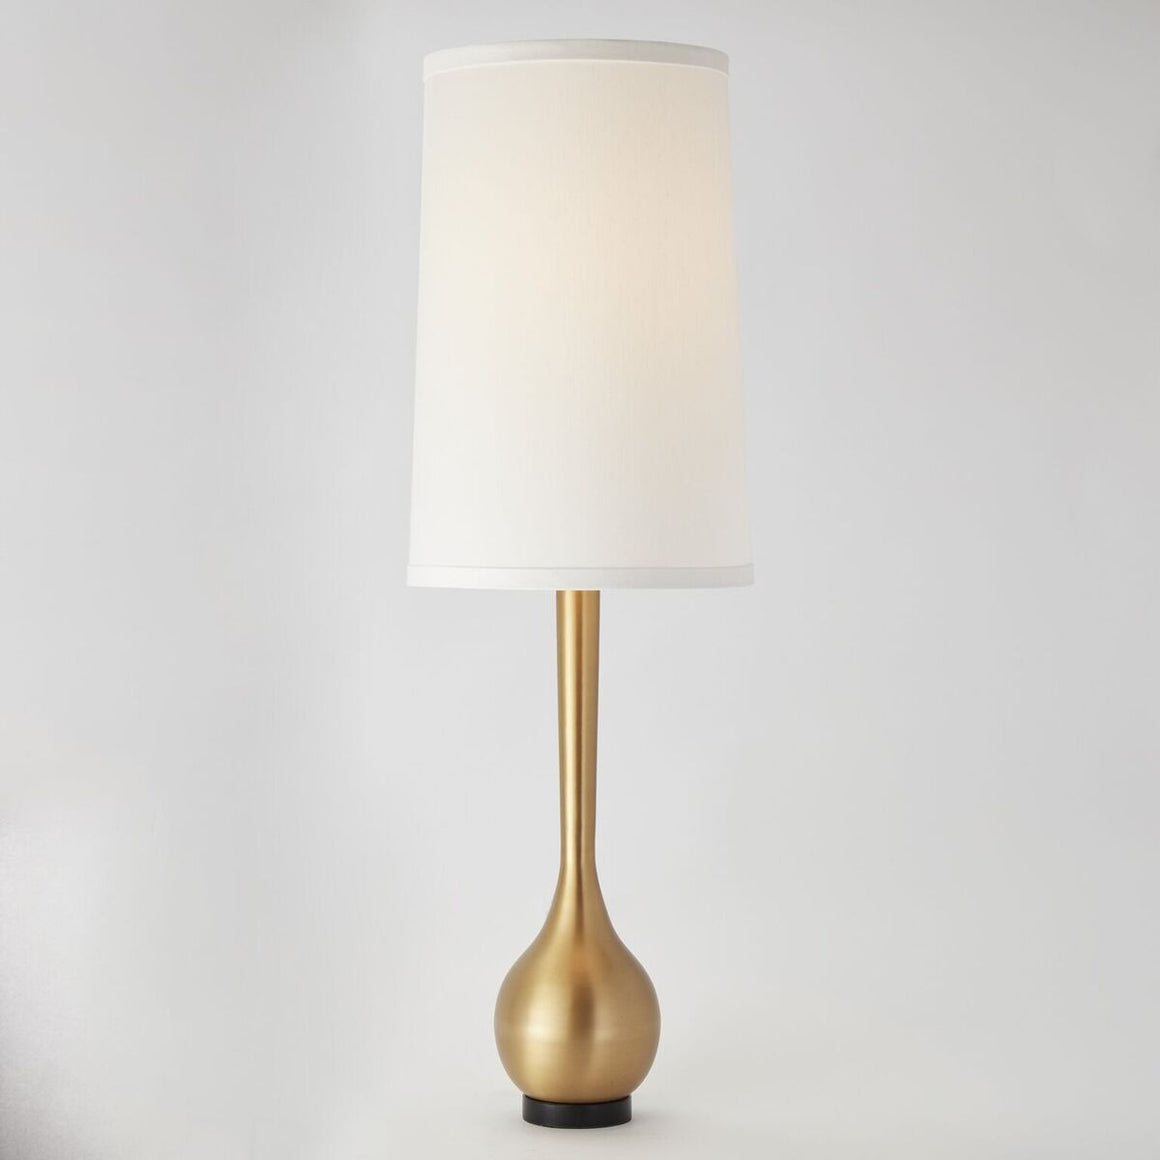 Tall Modern Table Lamp – Antique Brass